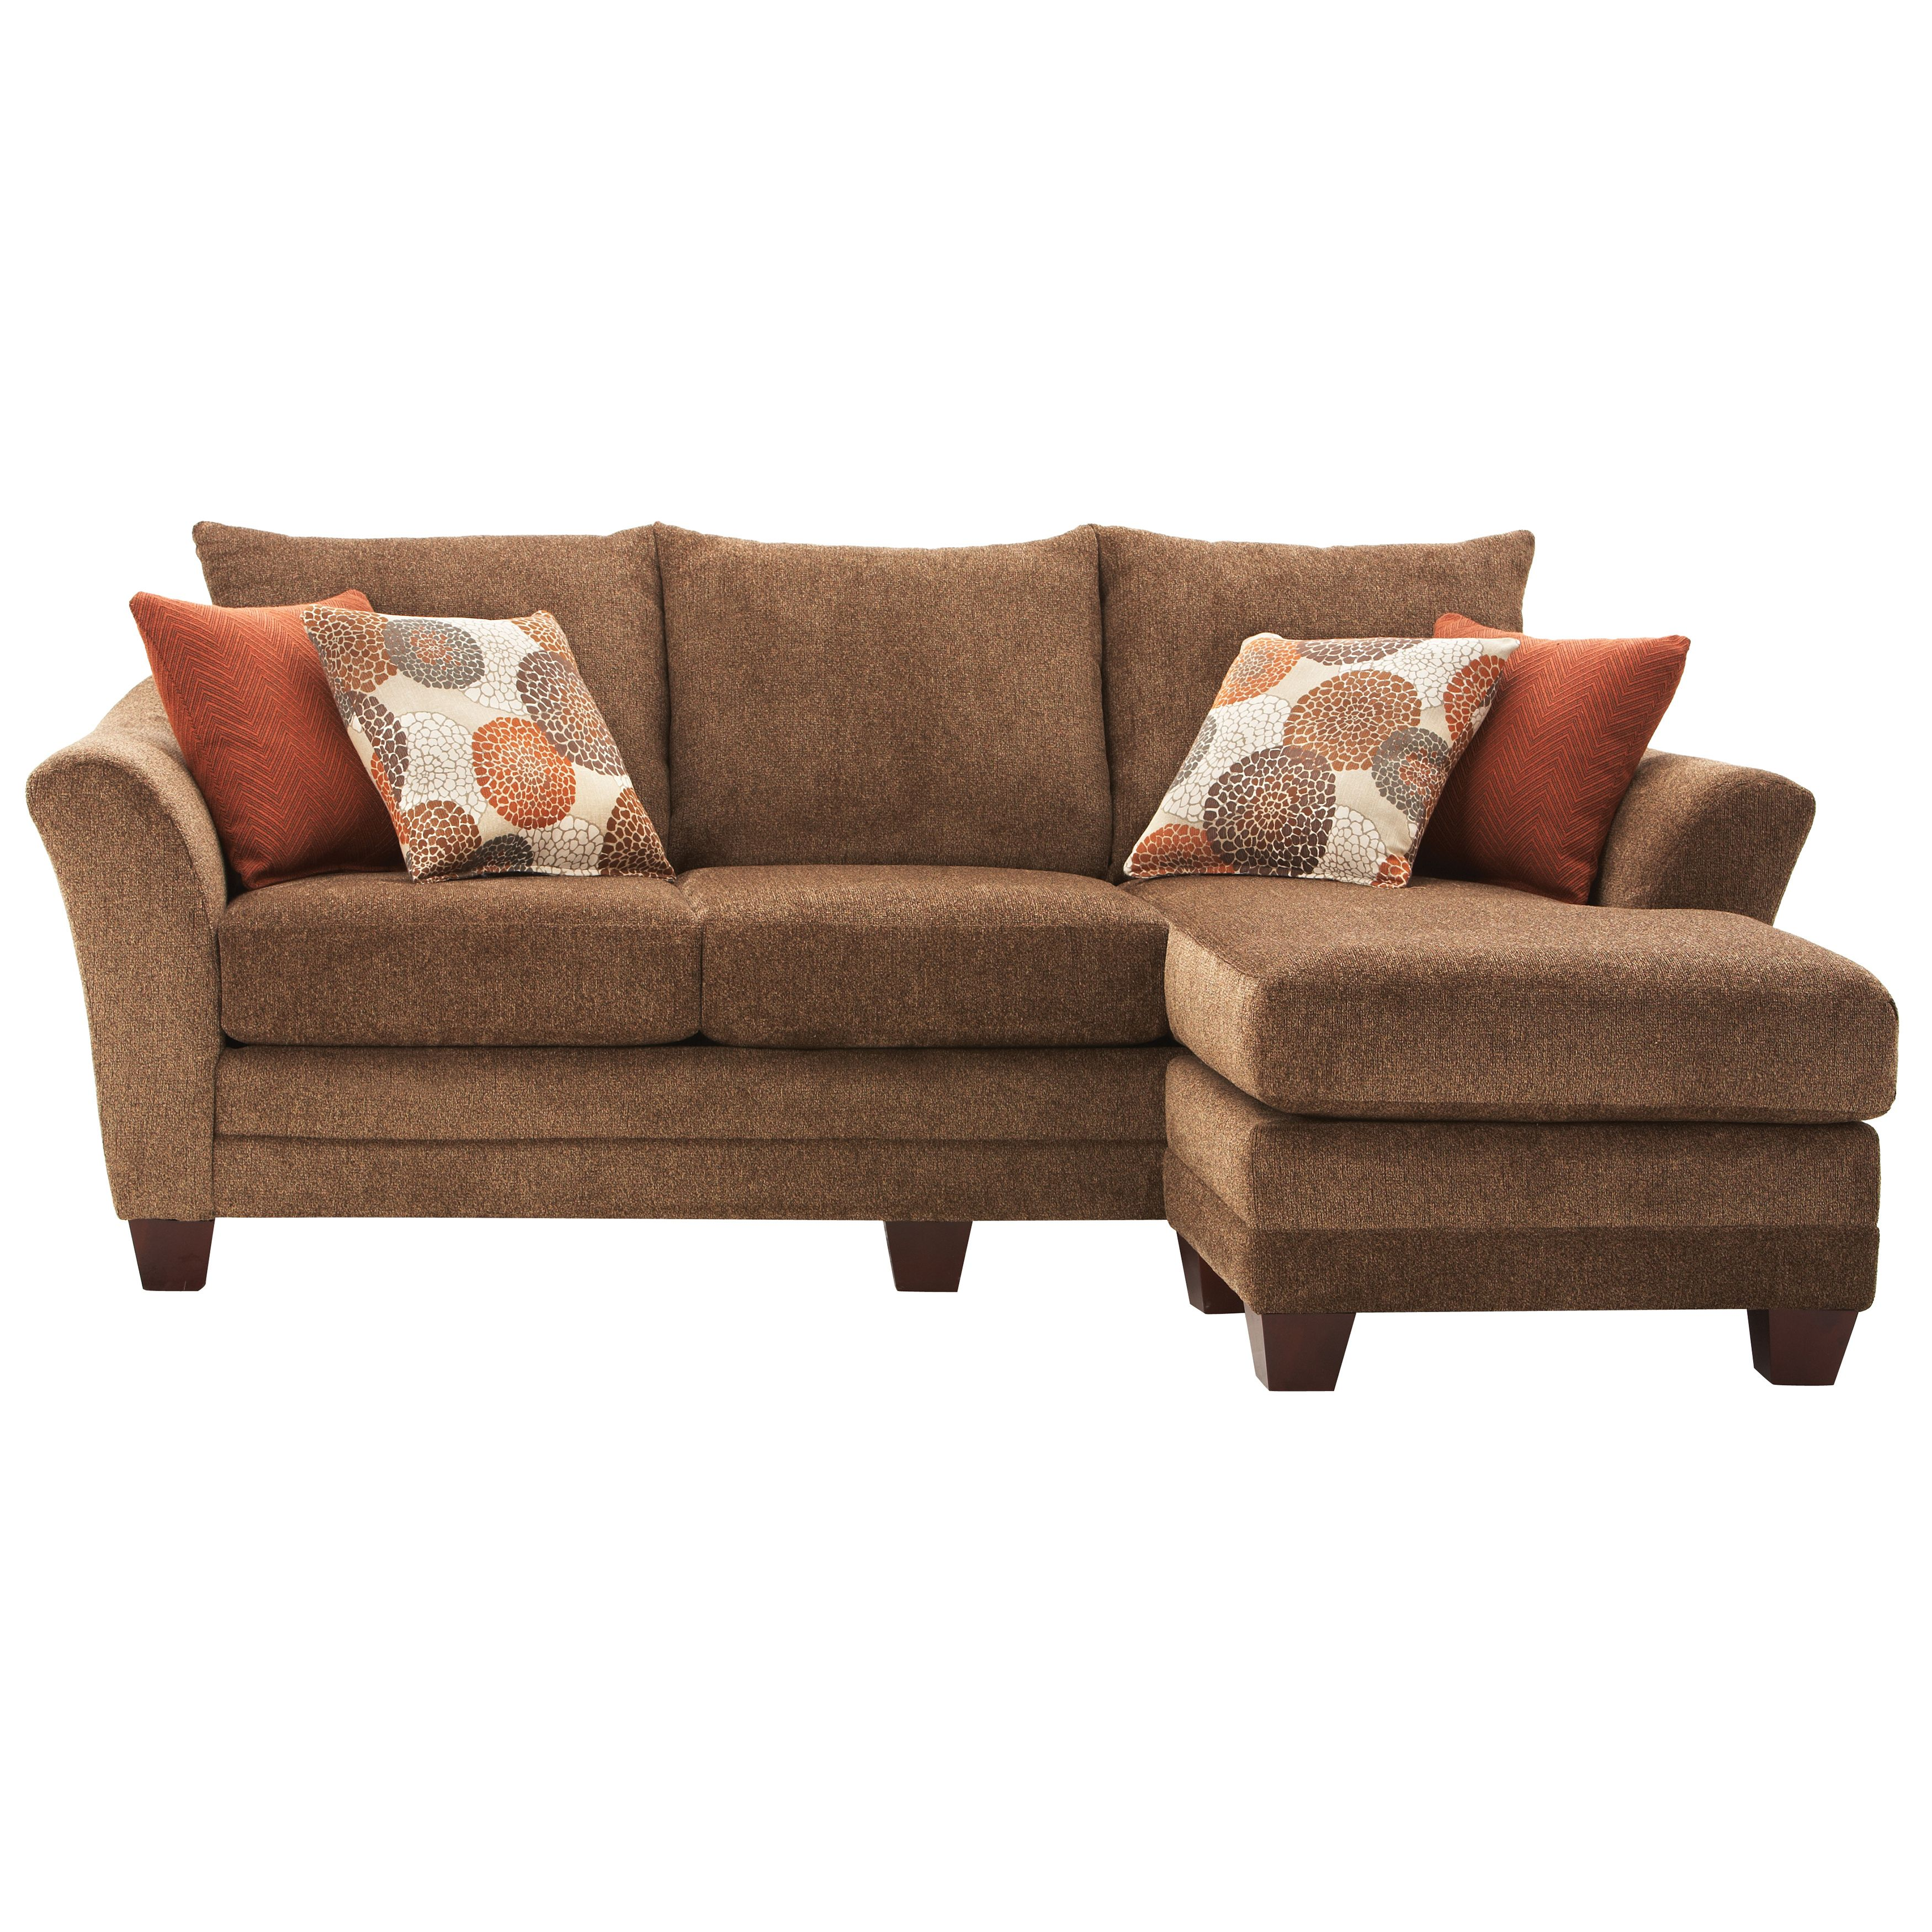 chaise review with sectional sharkfin possibilities arm pc loveseat fabric